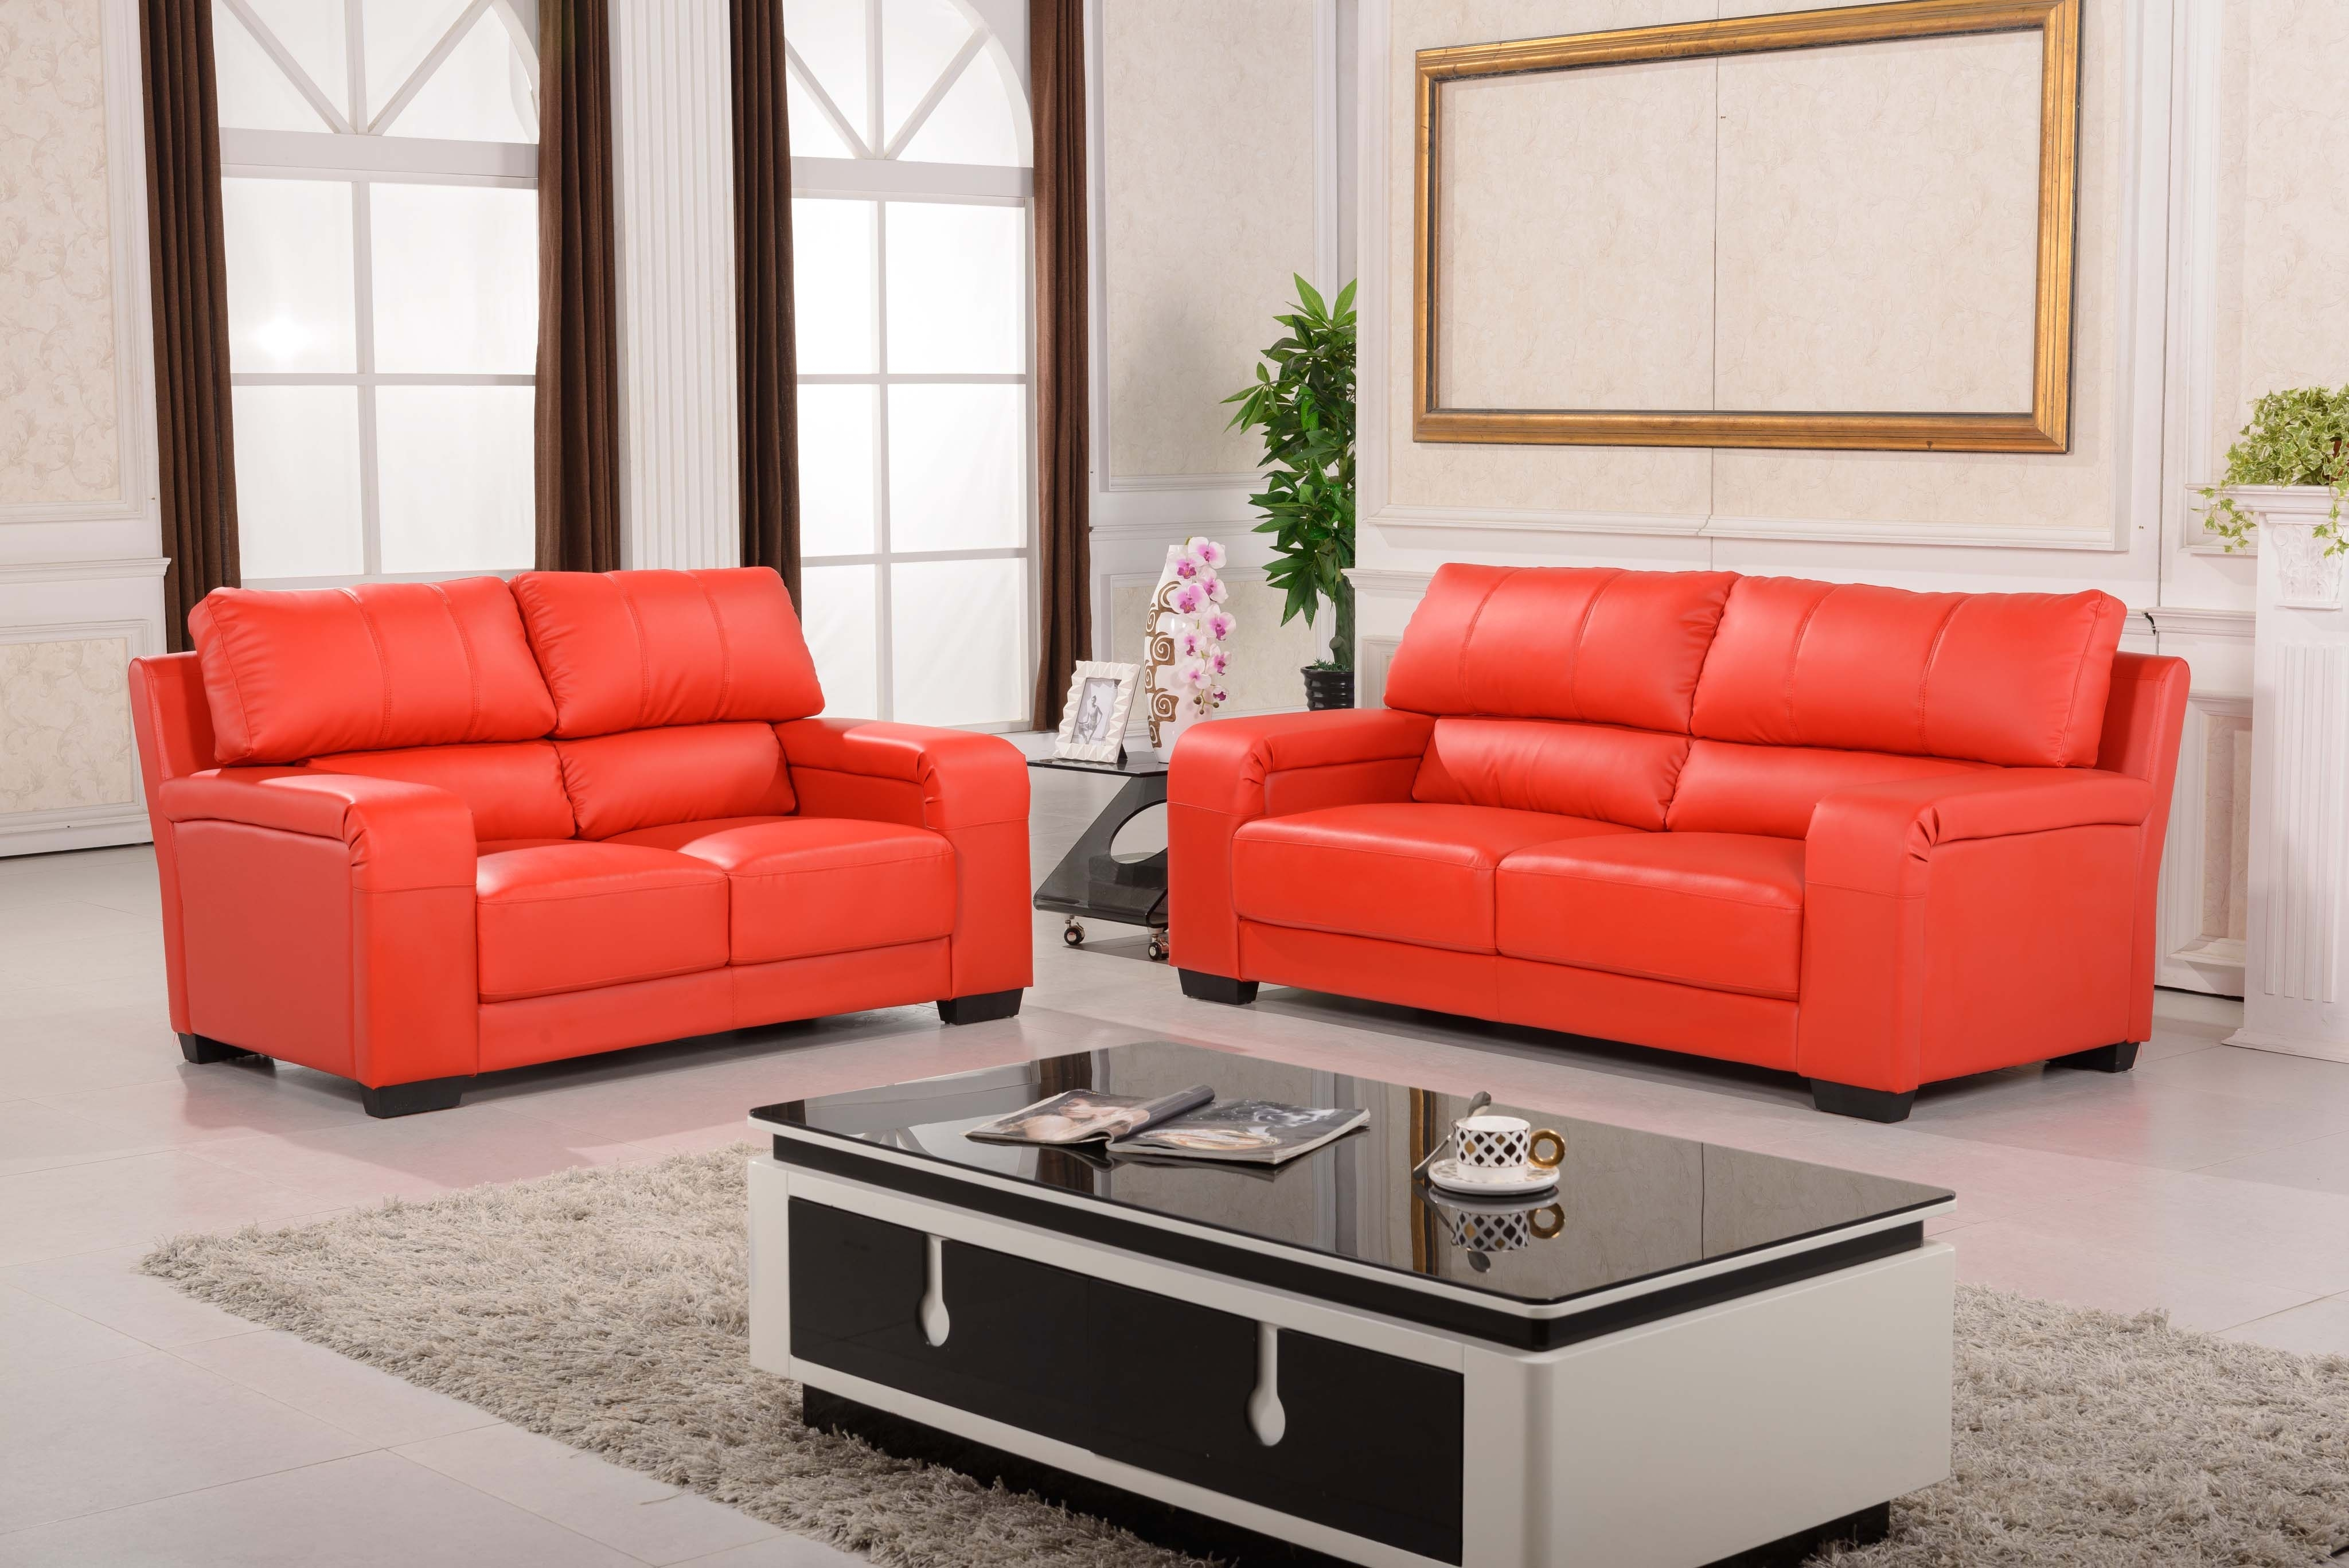 Leather Sofas Orange County Sofa Stores Ashley Furniture Sectional with regard to Orange County Ca Sectional Sofas (Image 7 of 10)